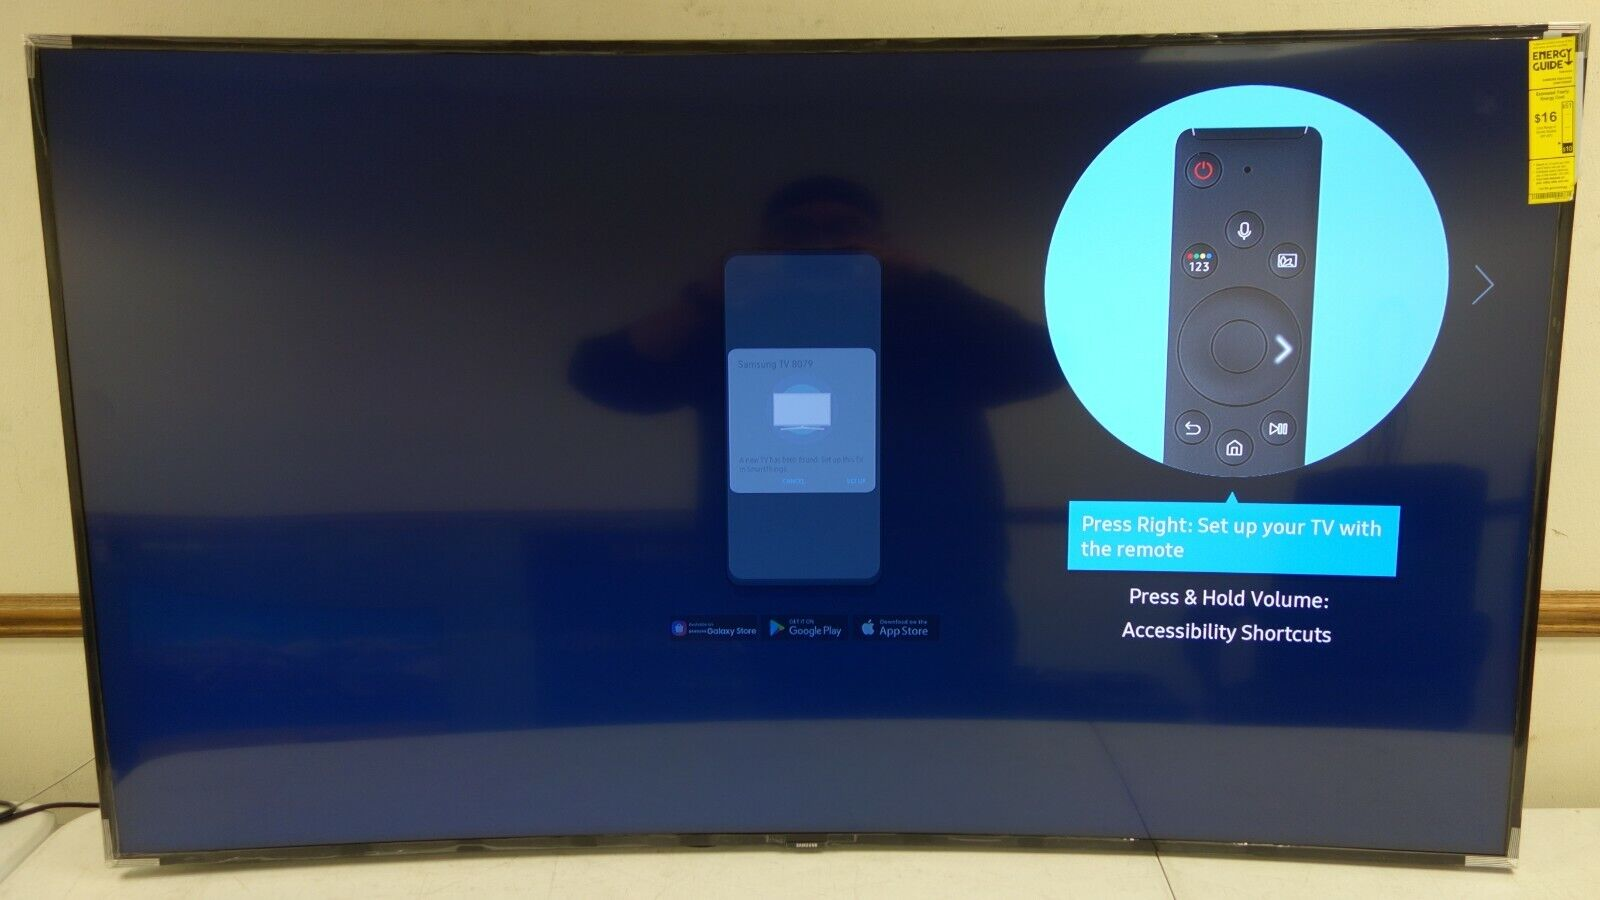 Samsung - 65 Class TU8300 Curved LED 4K UHD Smart Tizen TV(AR302). Available Now for 649.99